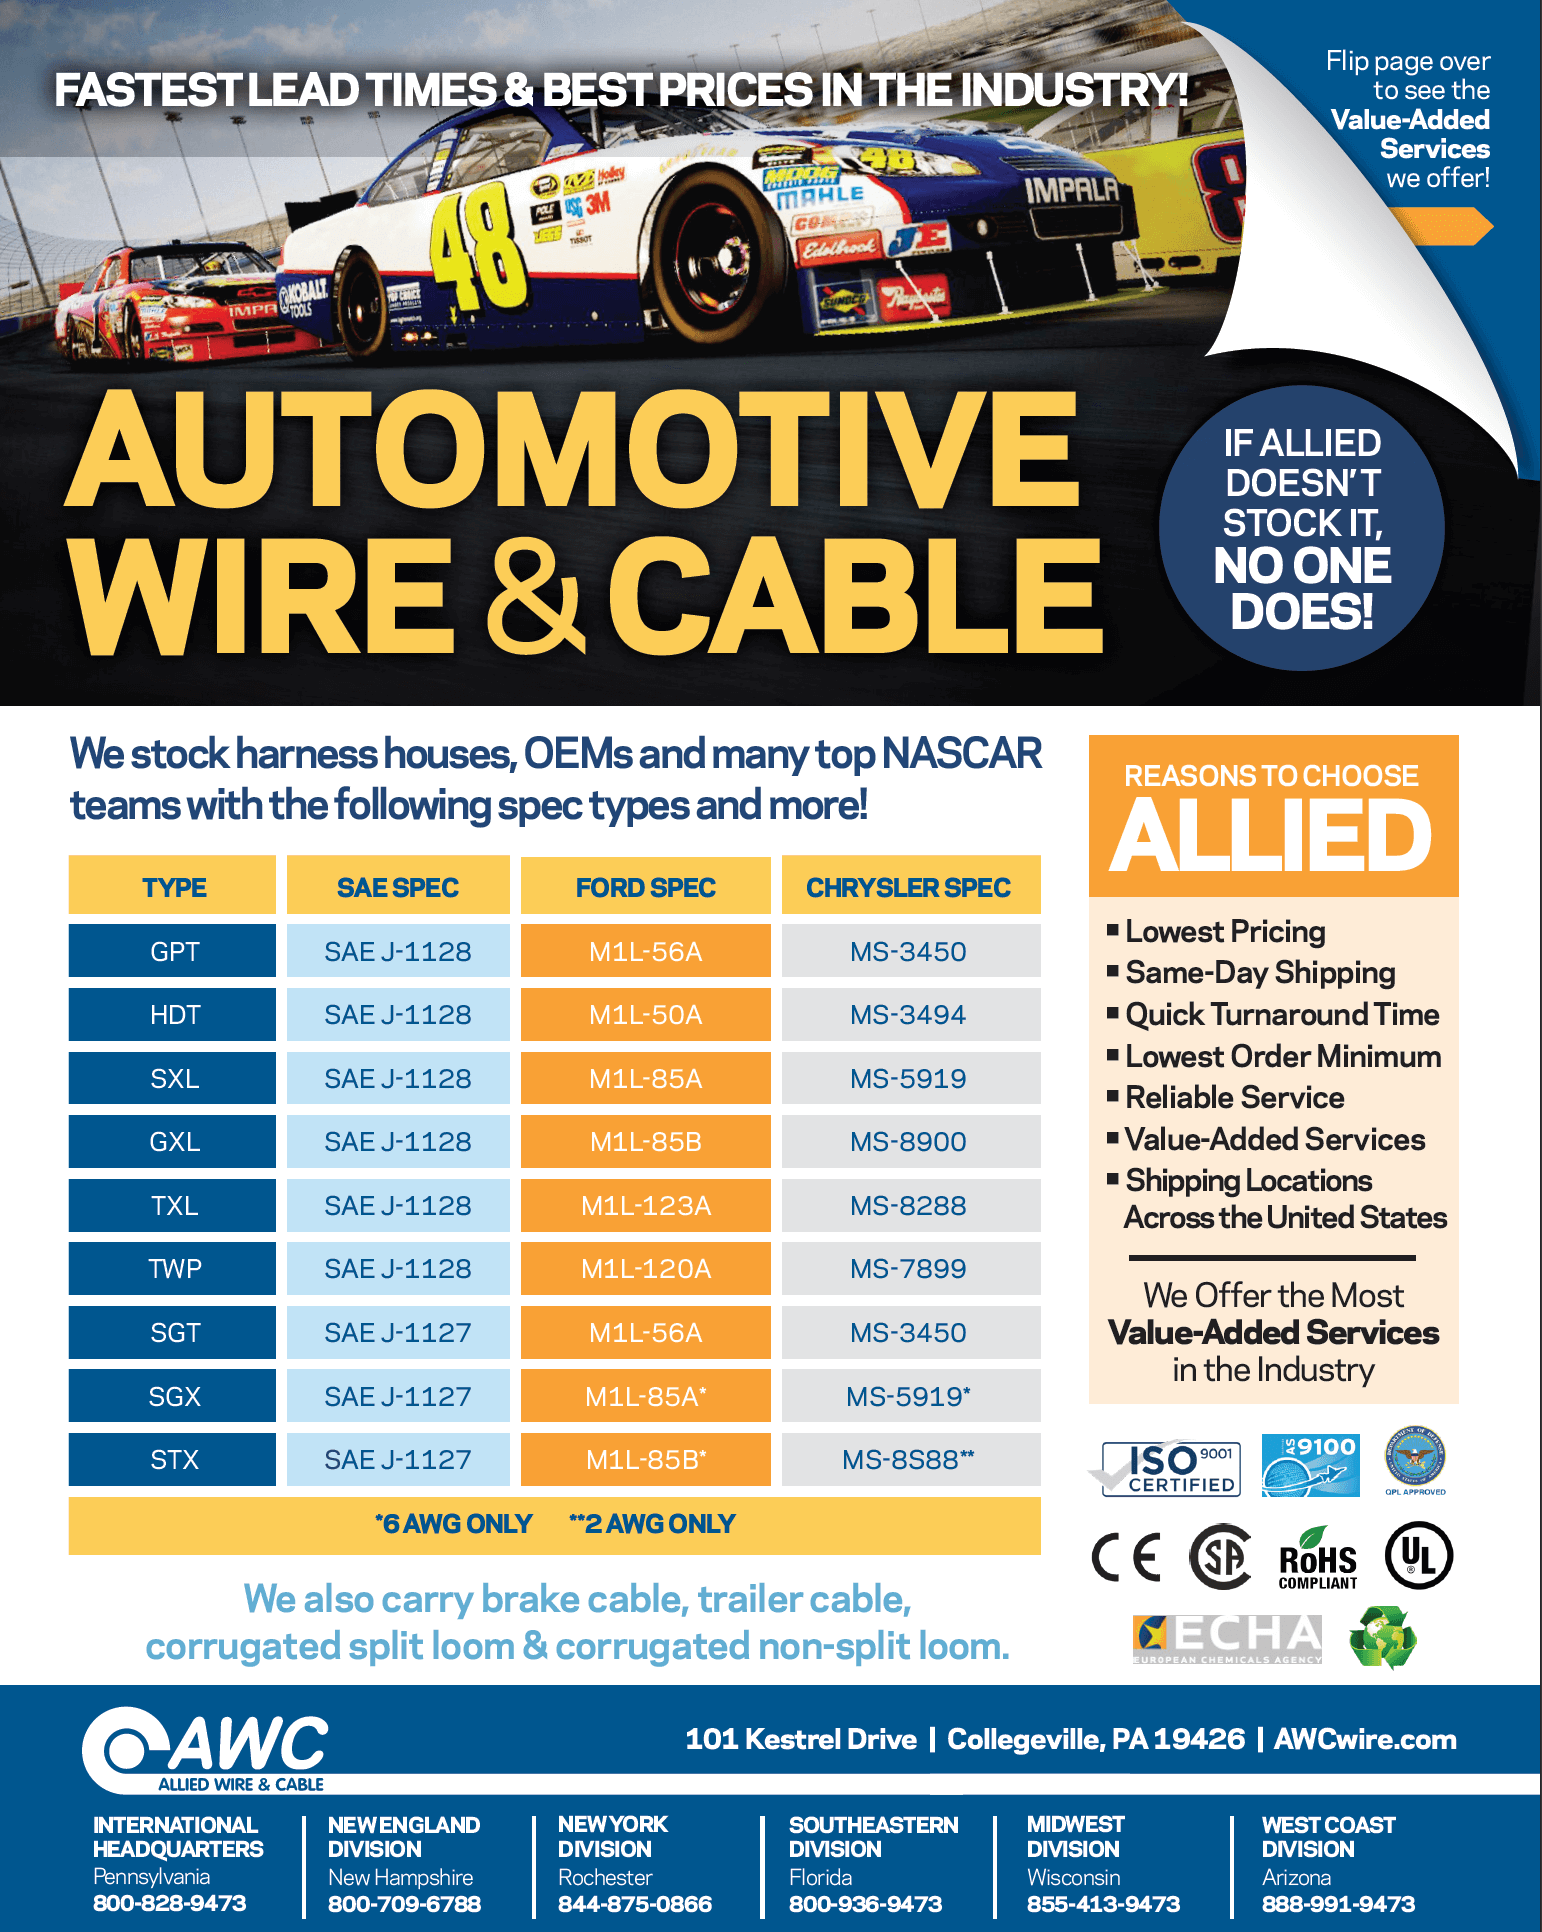 Automotive Cable Line Card from Allied Wire & Cable